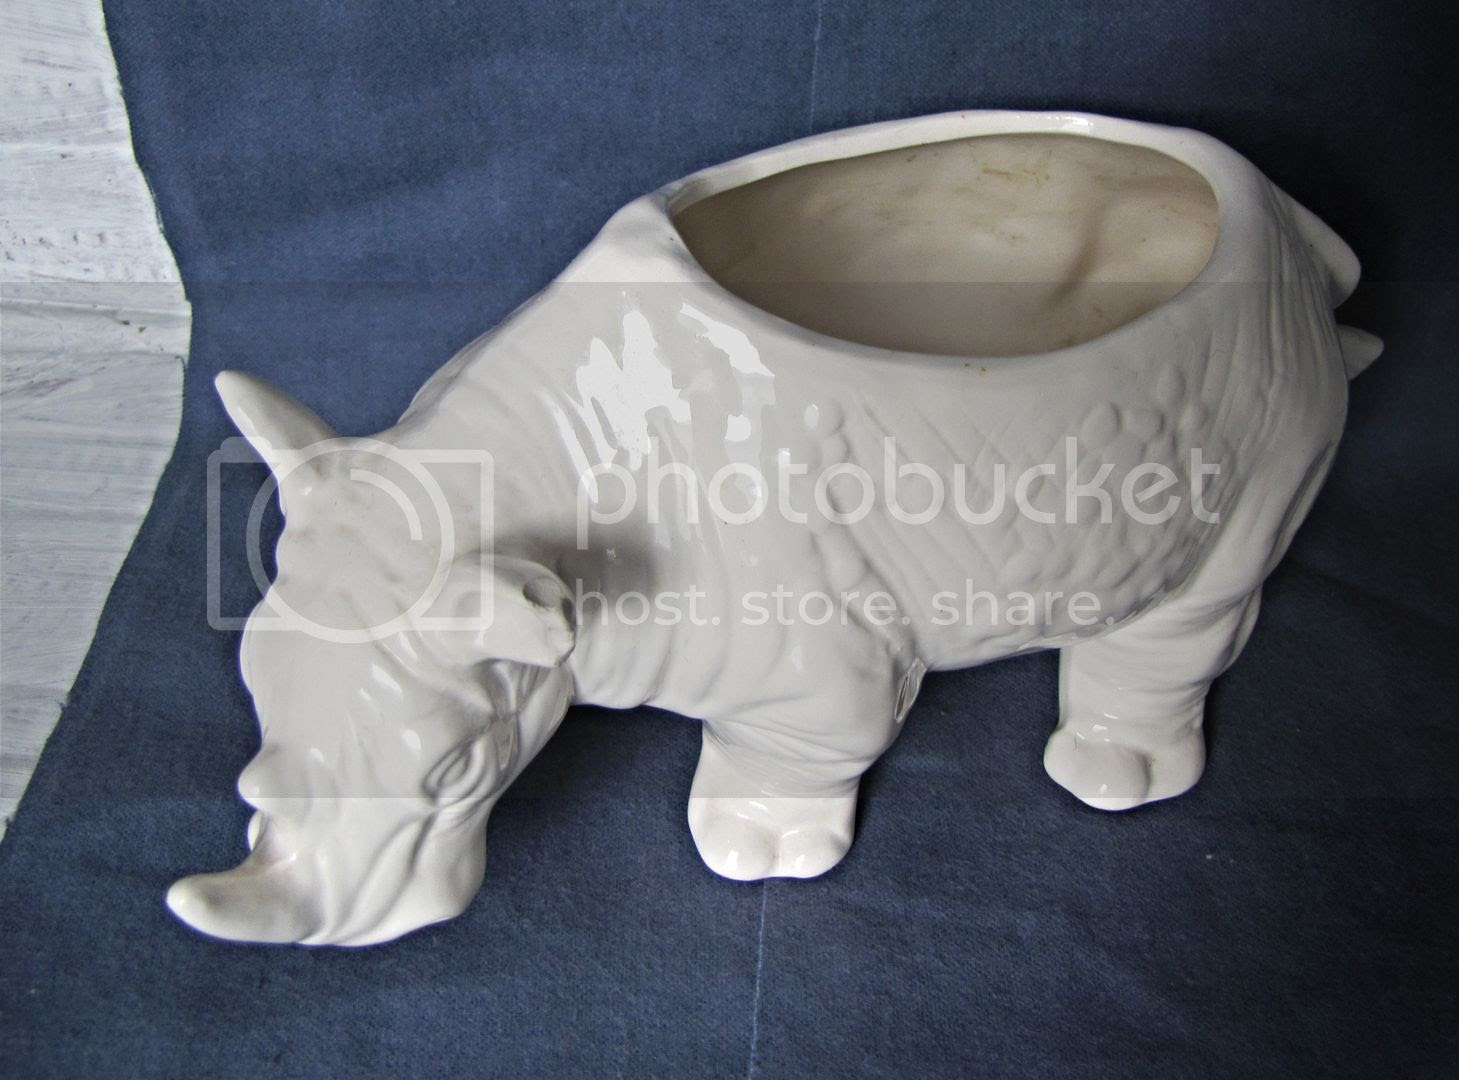 rhino pincushion from floral container - Indietutes.blogspot.com photo ee8f4c26-4c3e-4f4c-a618-1e21b0a89cea.jpg